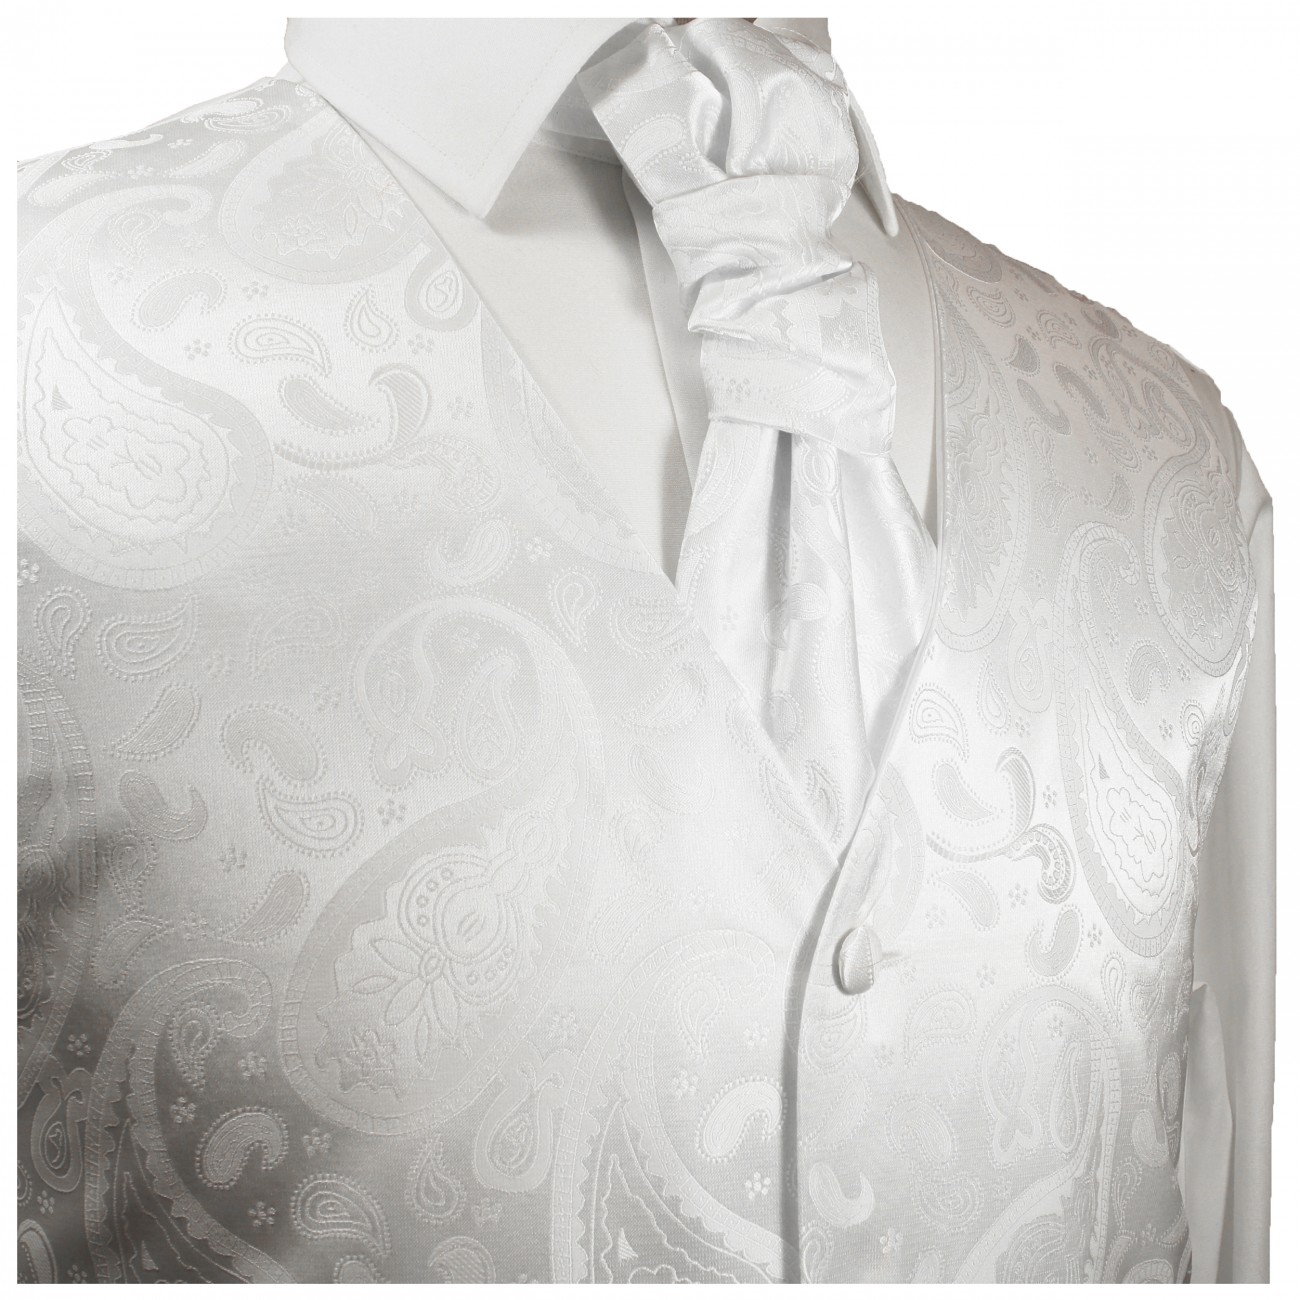 White waistcoat for wedding with necktie ascot tie pocket square and cufflinks v17